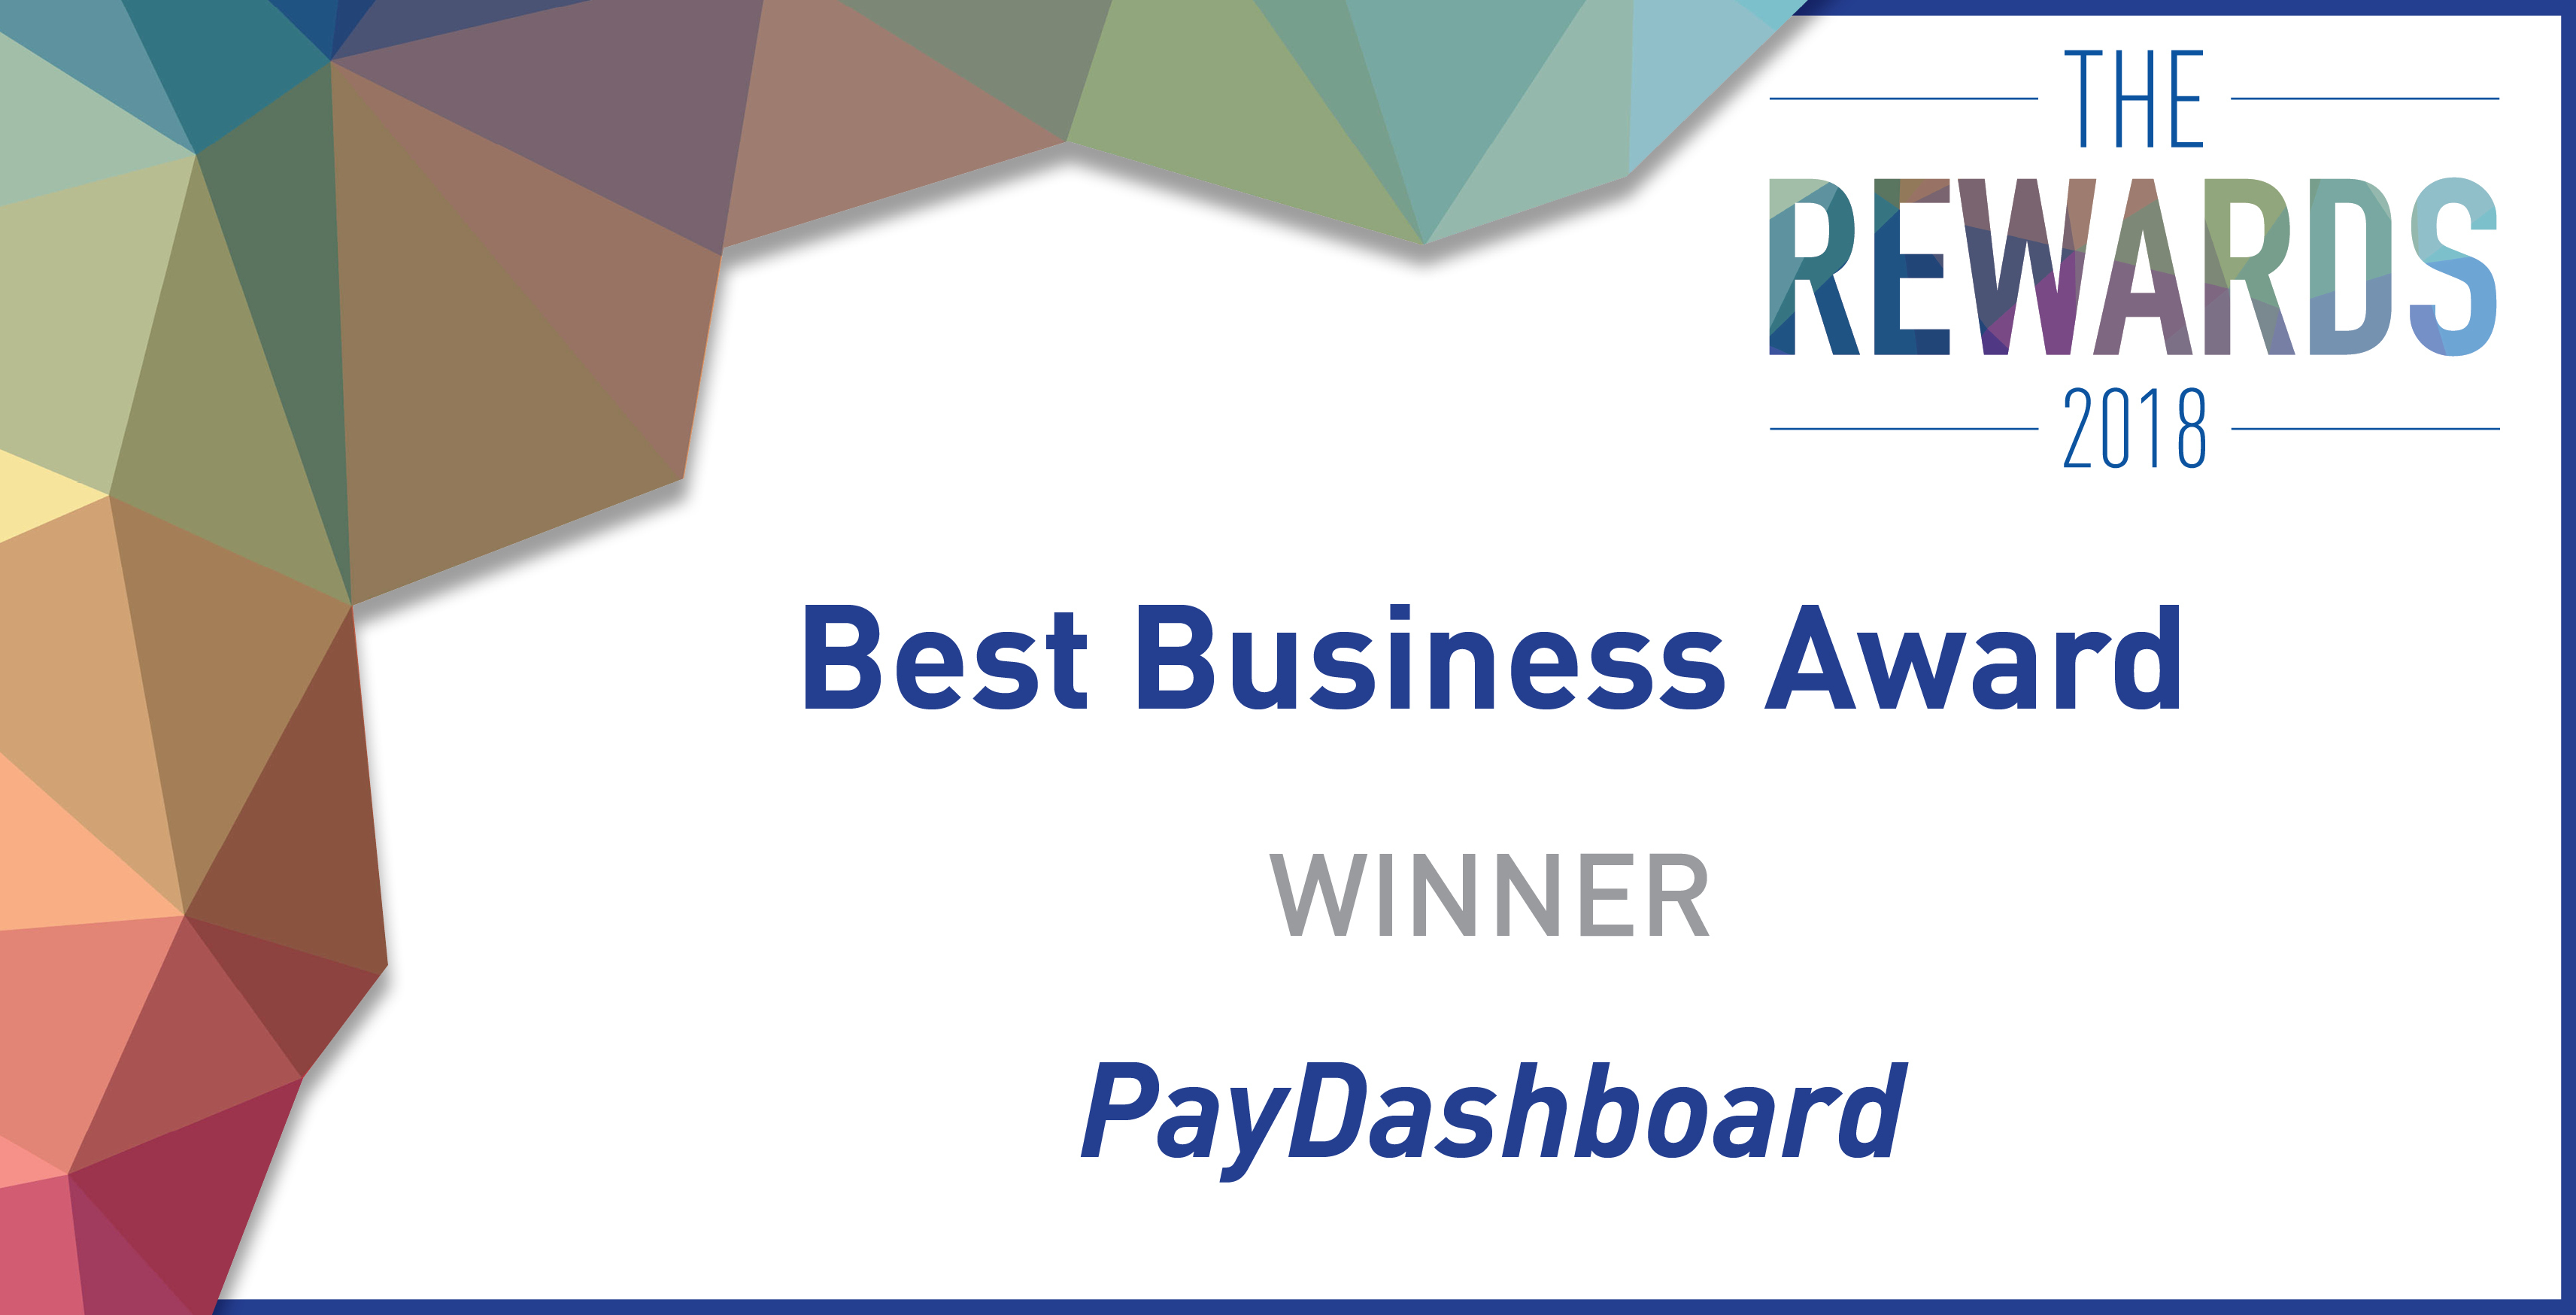 PayDashboard wins Best Business Award